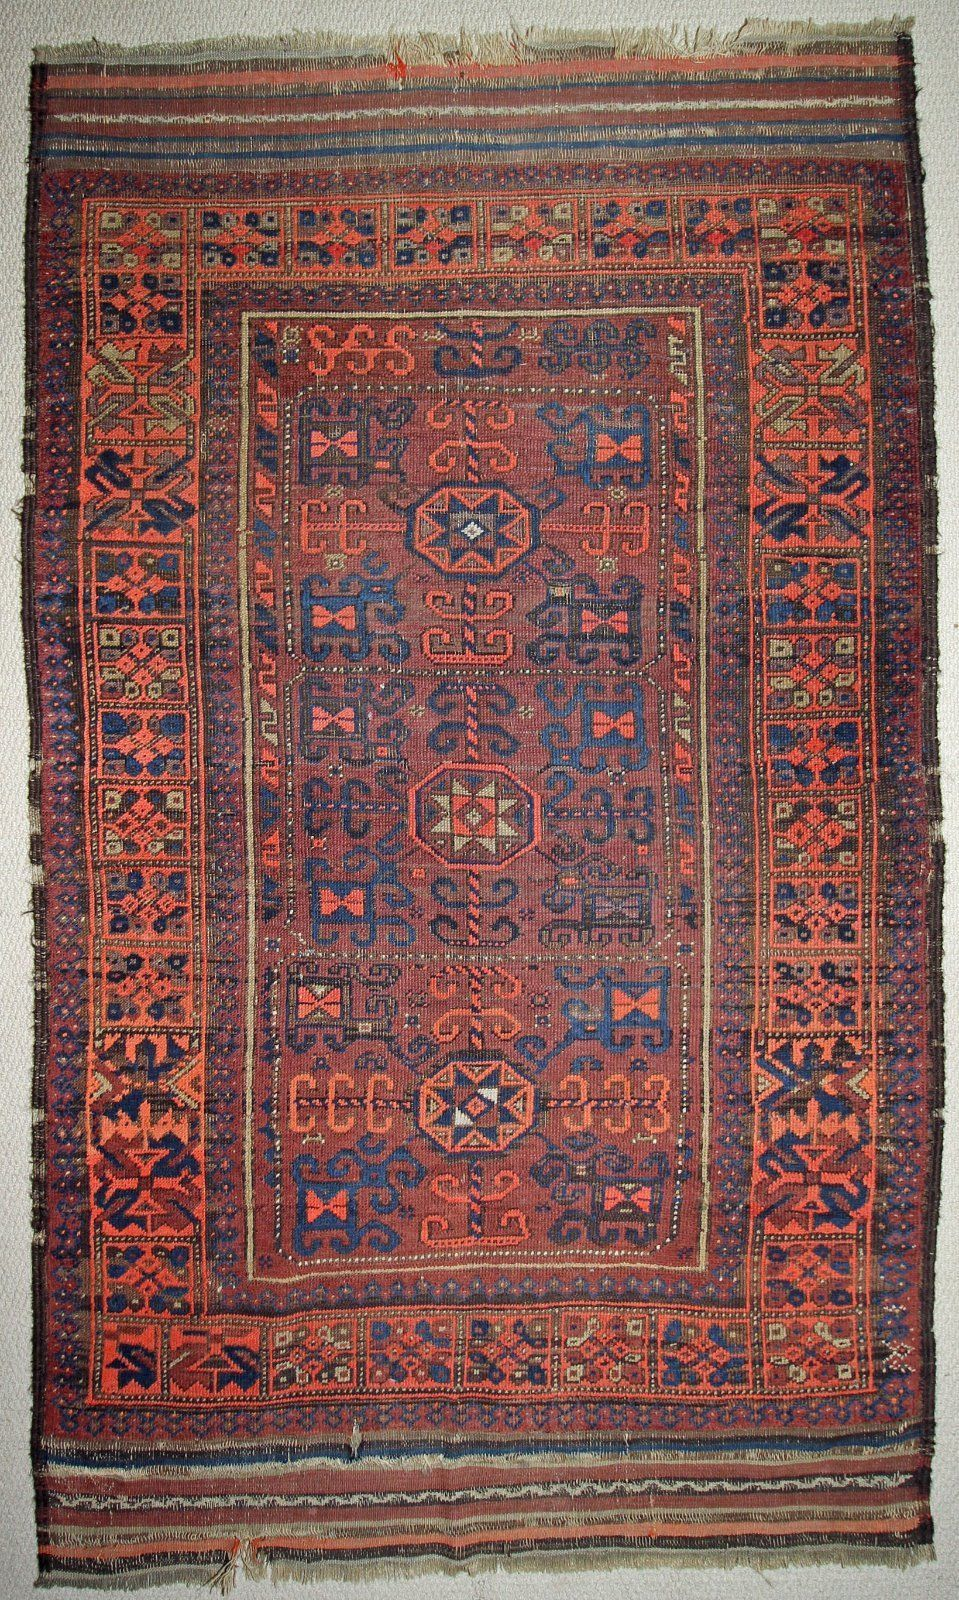 Läufer Teppich Ebay Antique Baluch Rug In Antiques Rugs Carpets Small 3x5 And